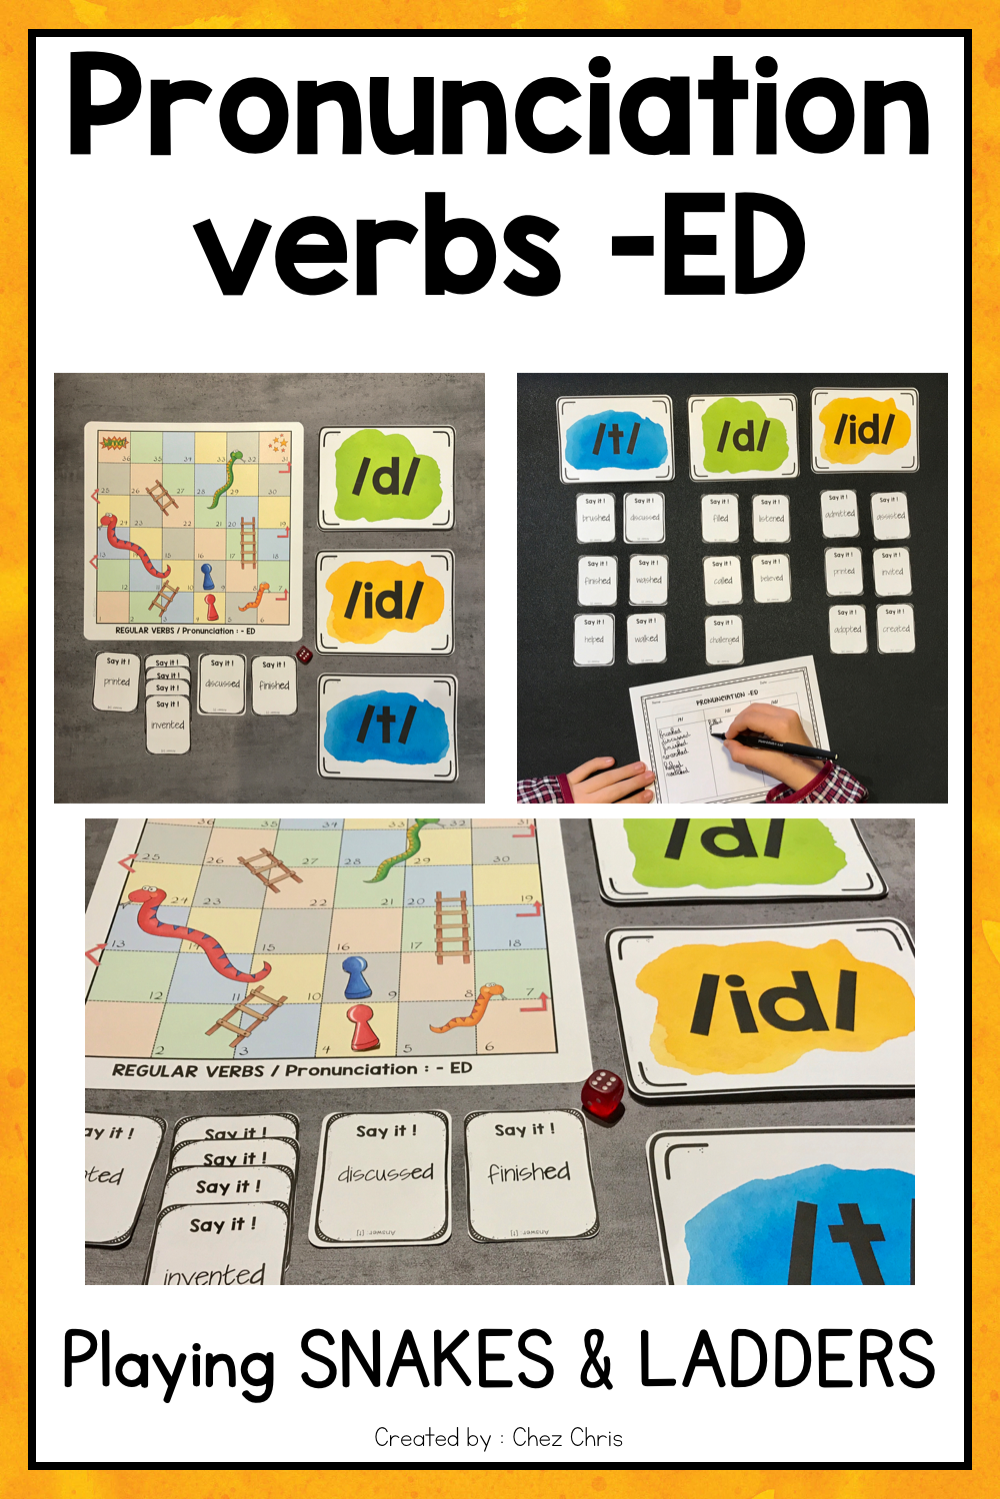 Pronouncing The Ending Ed Is Always Difficult For Esl Students With This Game The Teaching English Language Learners Esl Teaching Resources Learning Methods [ 1499 x 1000 Pixel ]